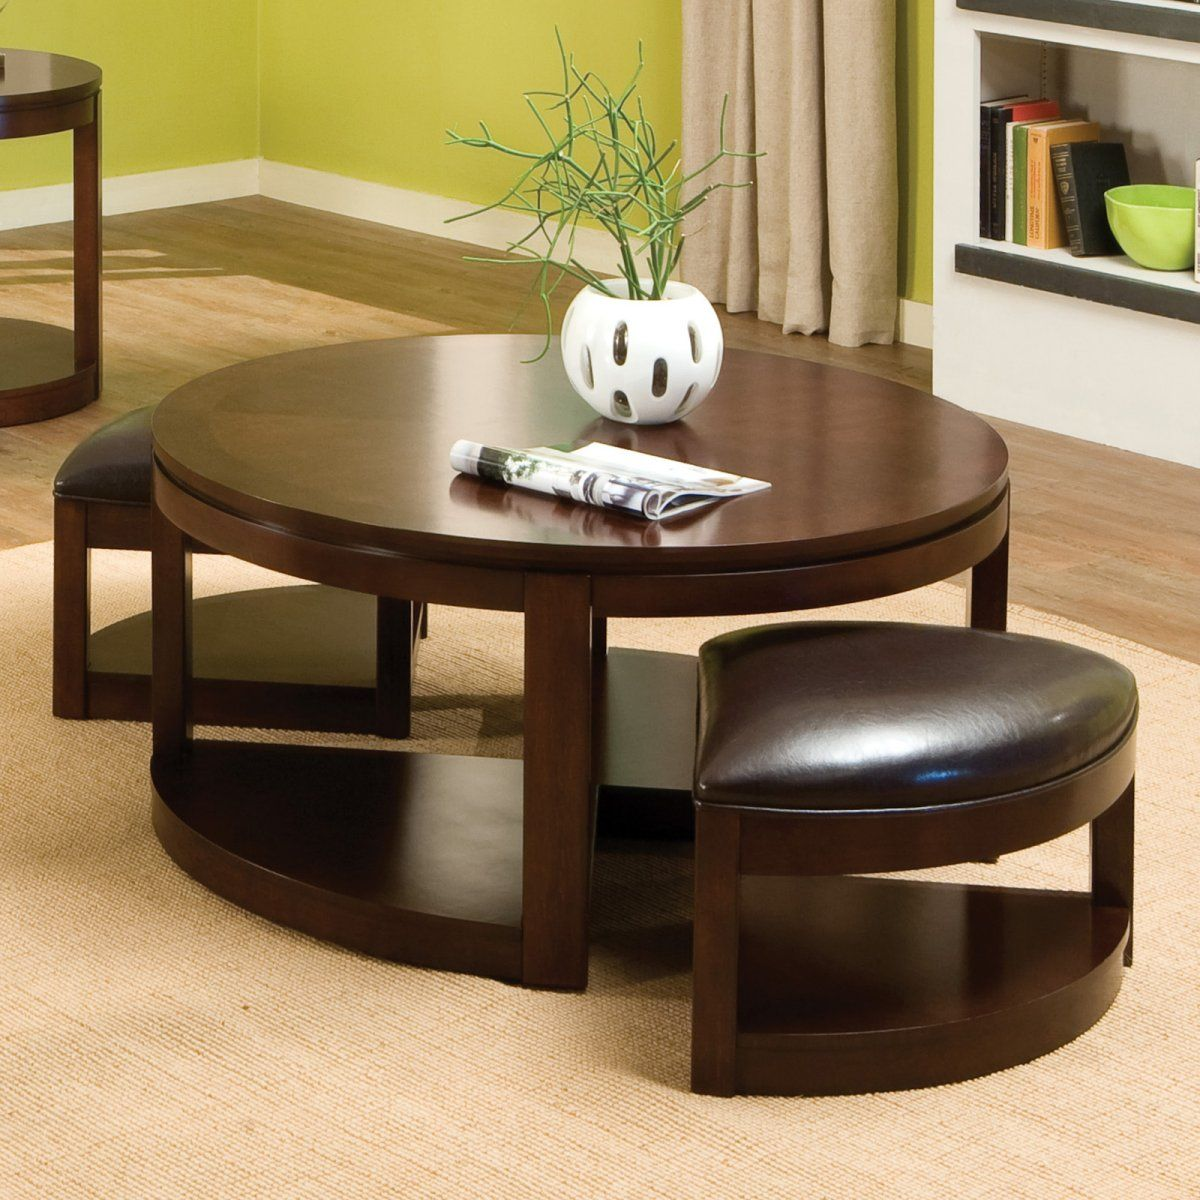 Print Of The Round Coffee Tables With Storage The Simple And